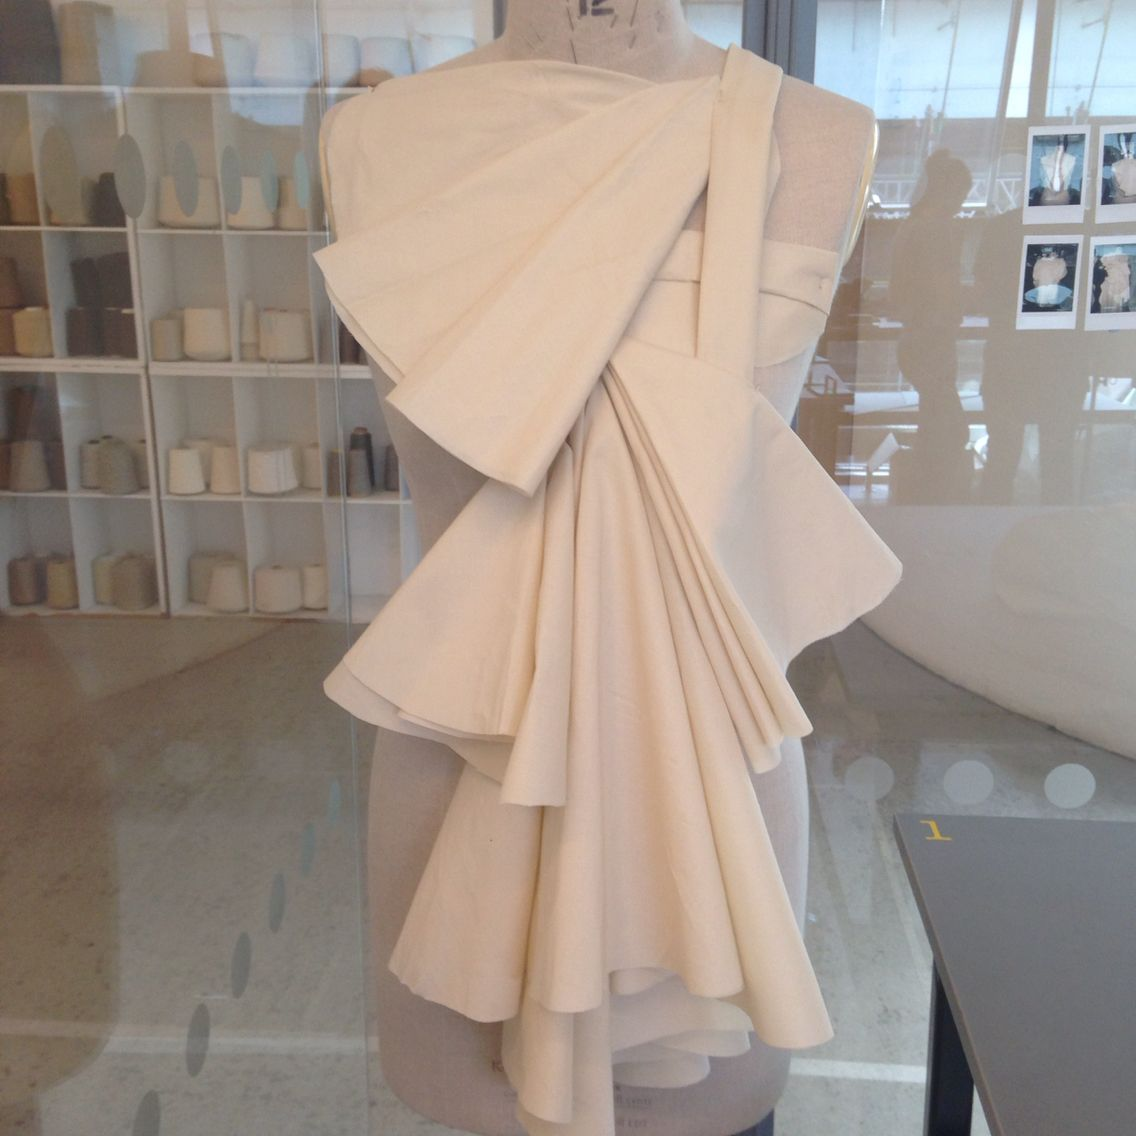 Angular Pleating And Layering Draping On Mannequin